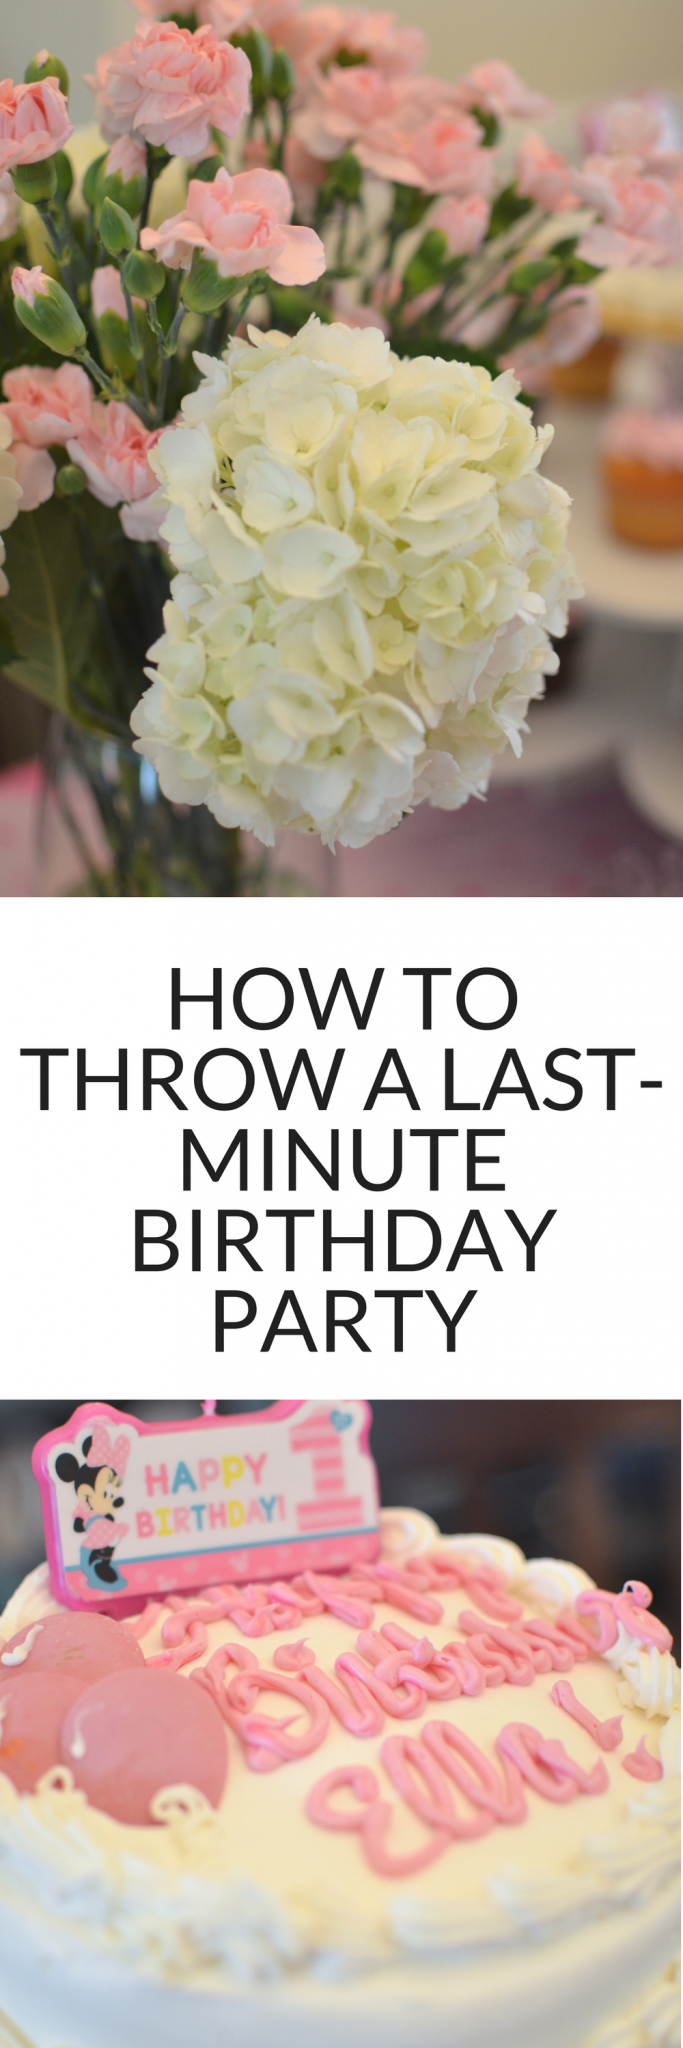 Throwing a last minute birthday party? It's easier than you think - check out these tips for throwing a perfect birthday party, even at the last minute! #birthdays #party #birthdayparty